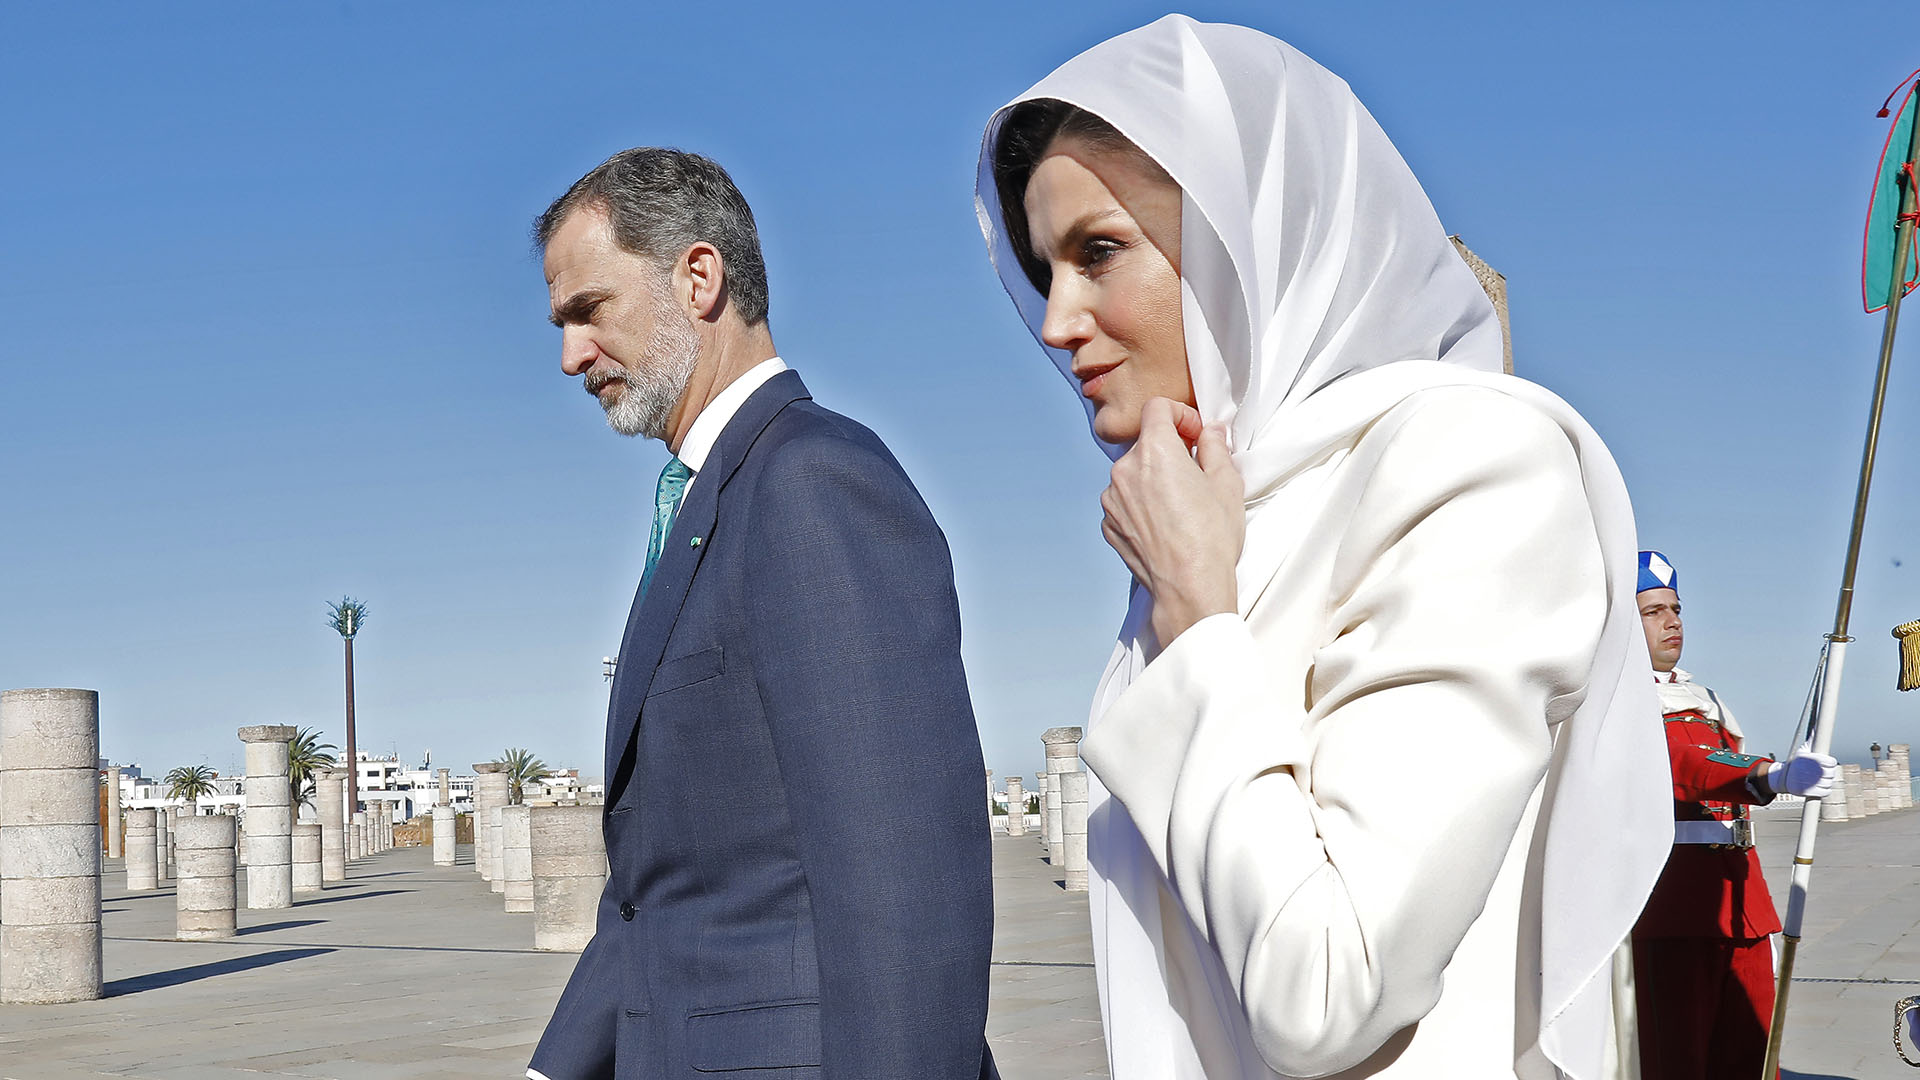 King Felipe IV of Spain (L) and Queen Letizia arrive at the mausoleum of Mohammed V in Morocco's capital Rabat, on February 14, 2019, during an official visit. (Photo by STRINGER / AFP) /